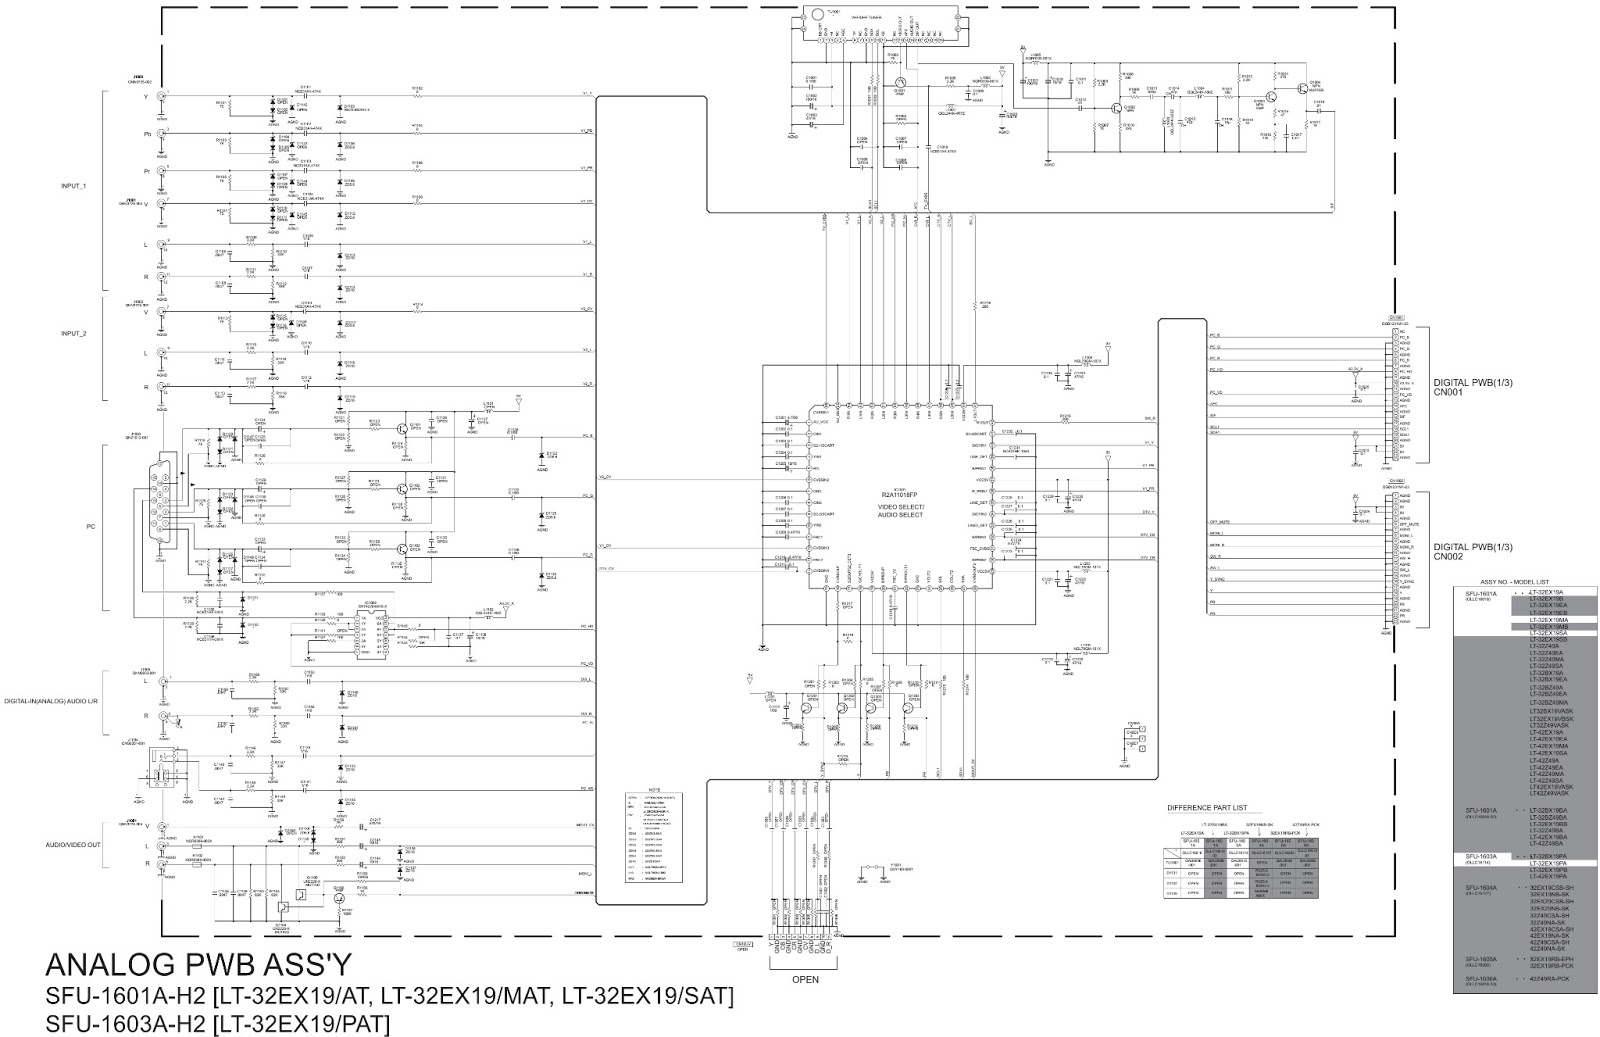 Lt 32ex29 32ex19 Jvc Lcd Tv Main Power Supply Schematic K Series Circuit Diagram Analogue Pwb